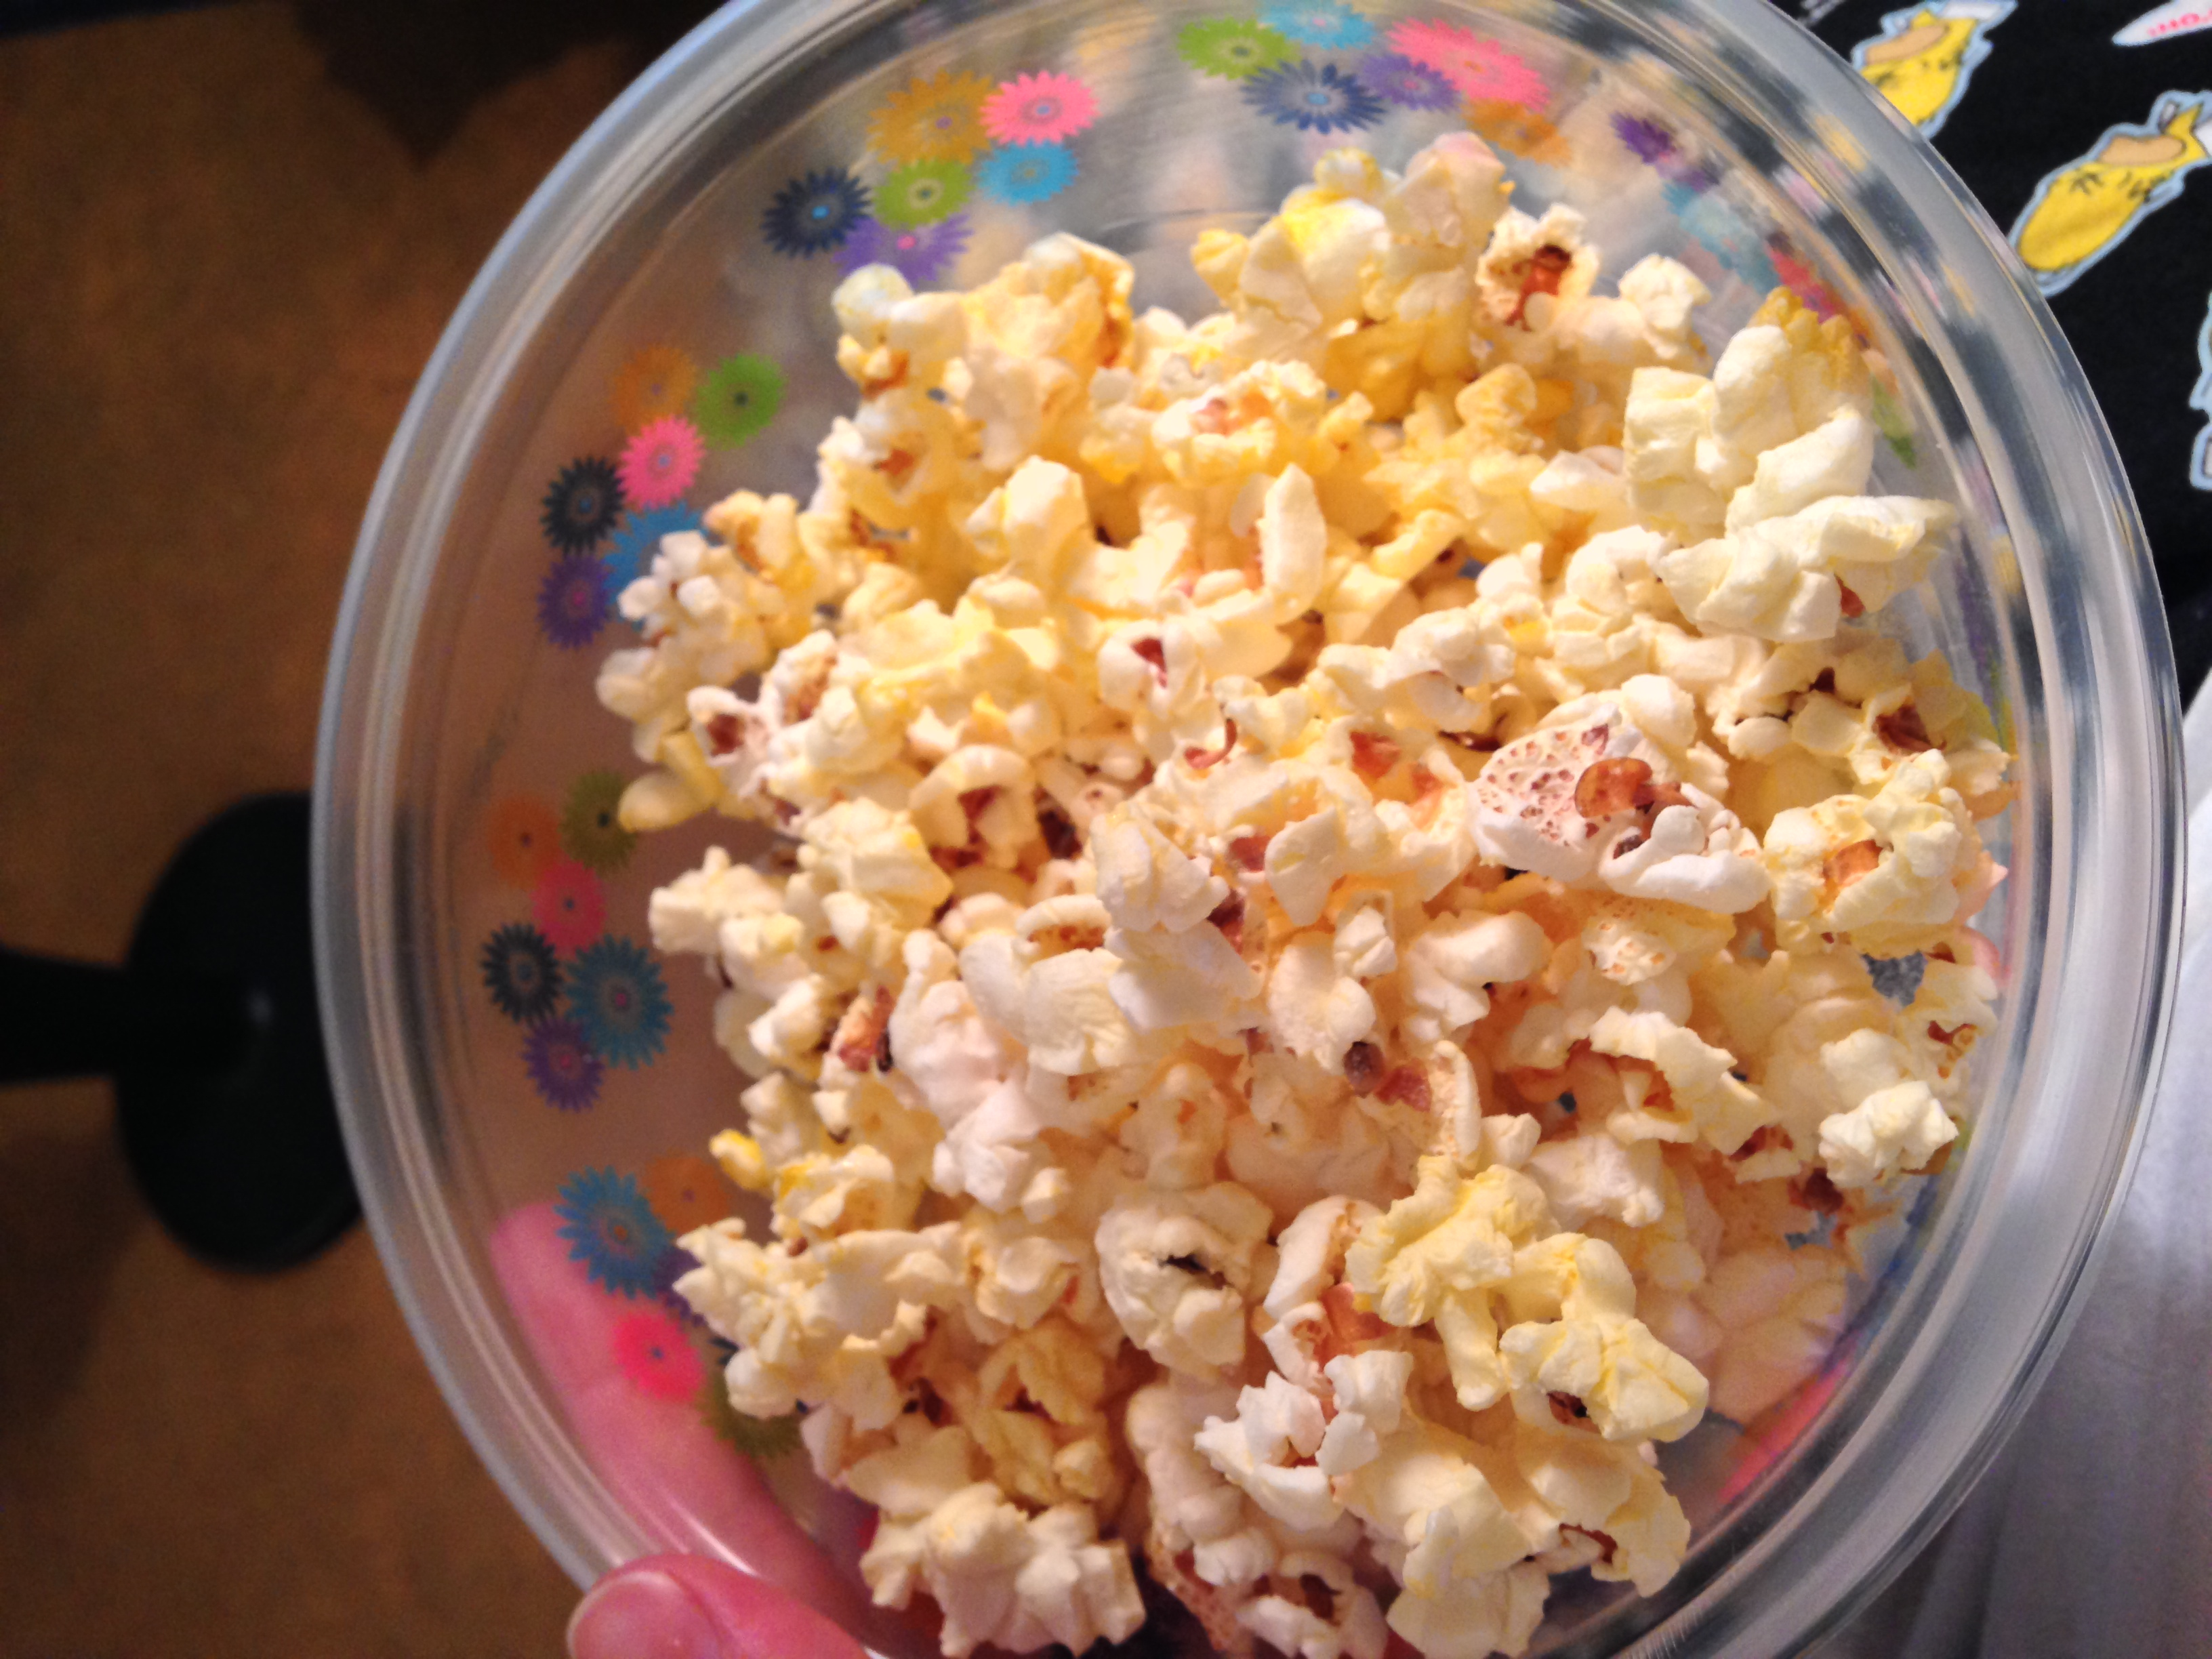 Popcorn for dessert while watching TV with my mom.